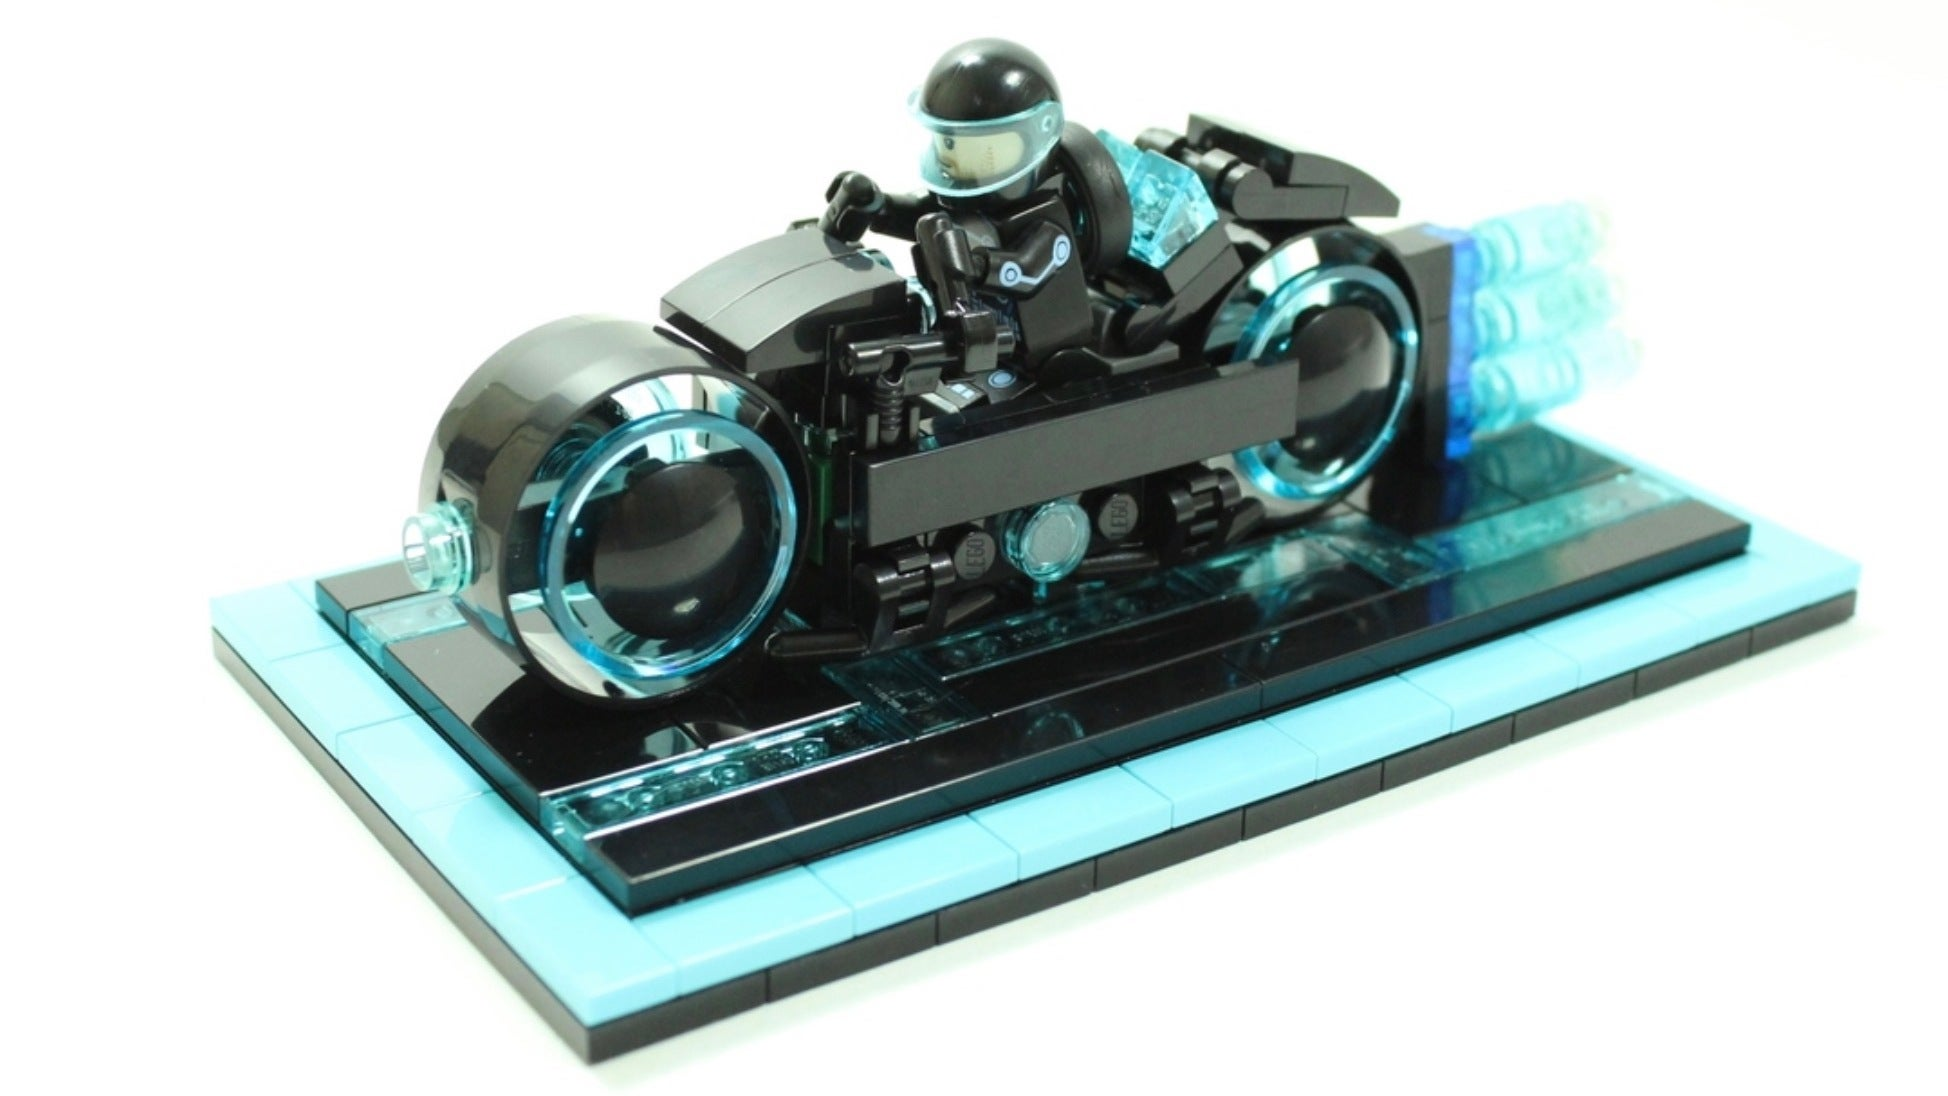 LEGO Enters The Grid With This FantasticTron Lightcycle Set